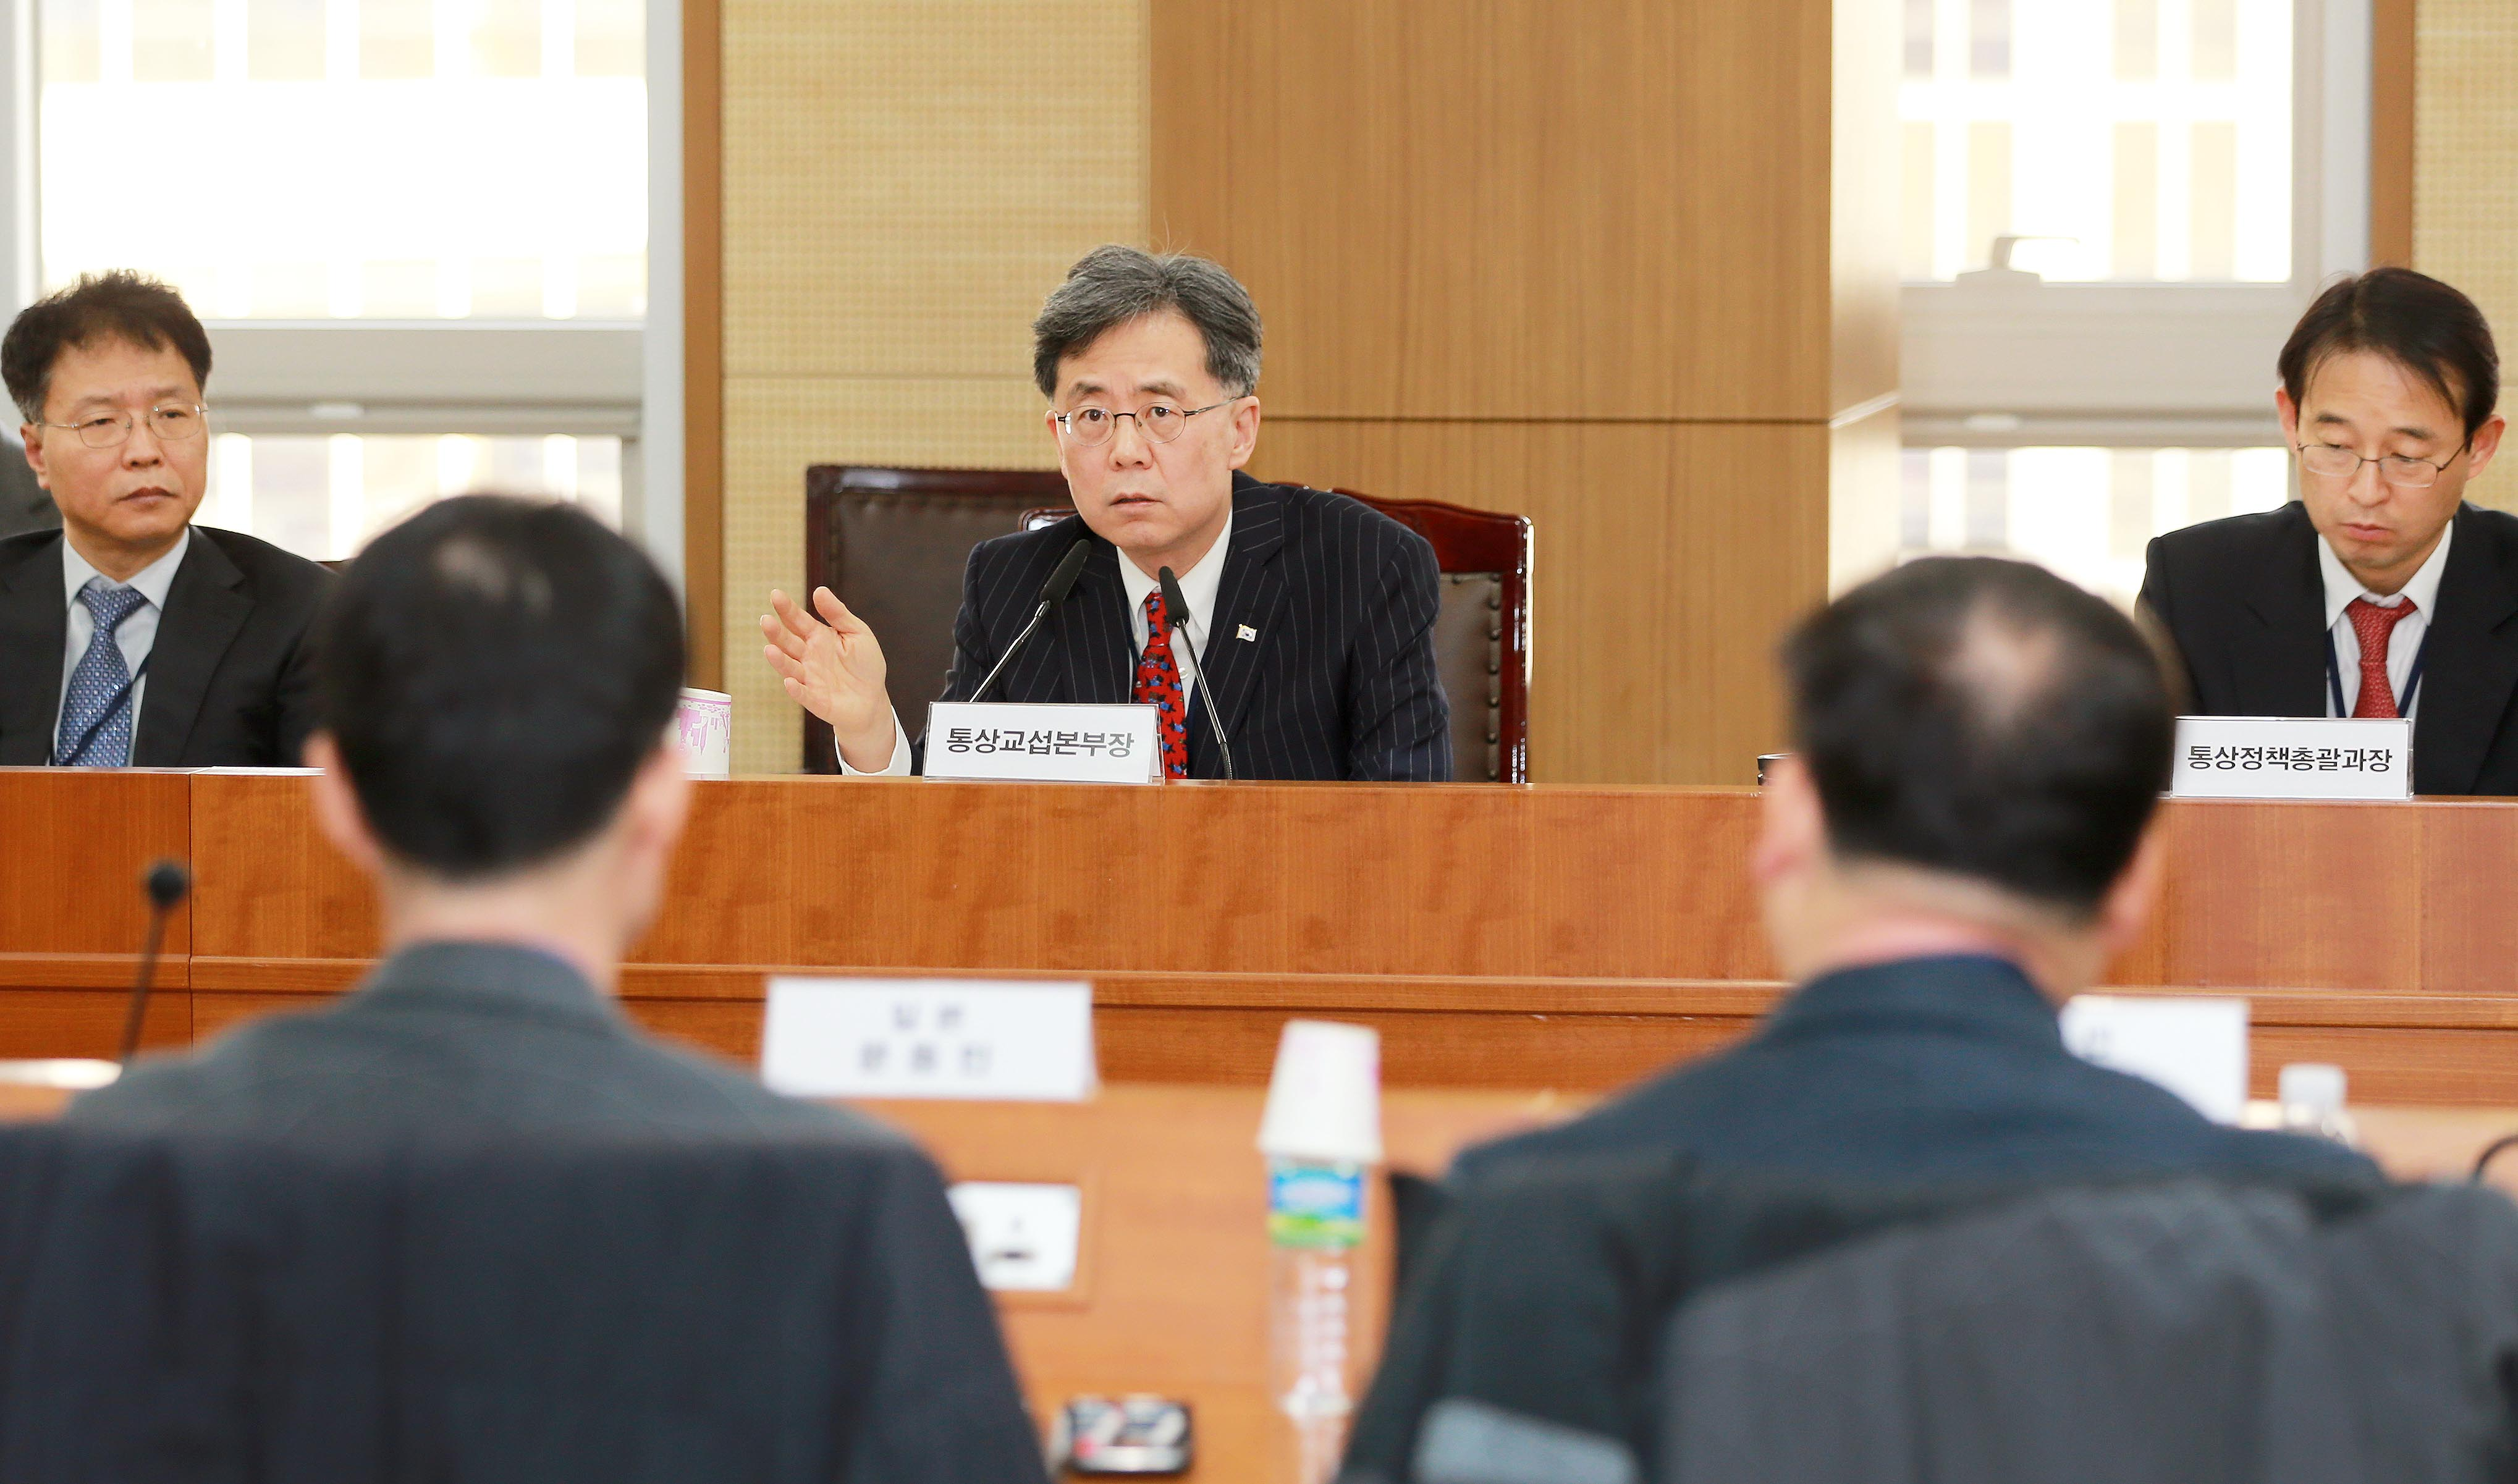 Trade Minister Kim discusses changing trade conditions with commercial attaches